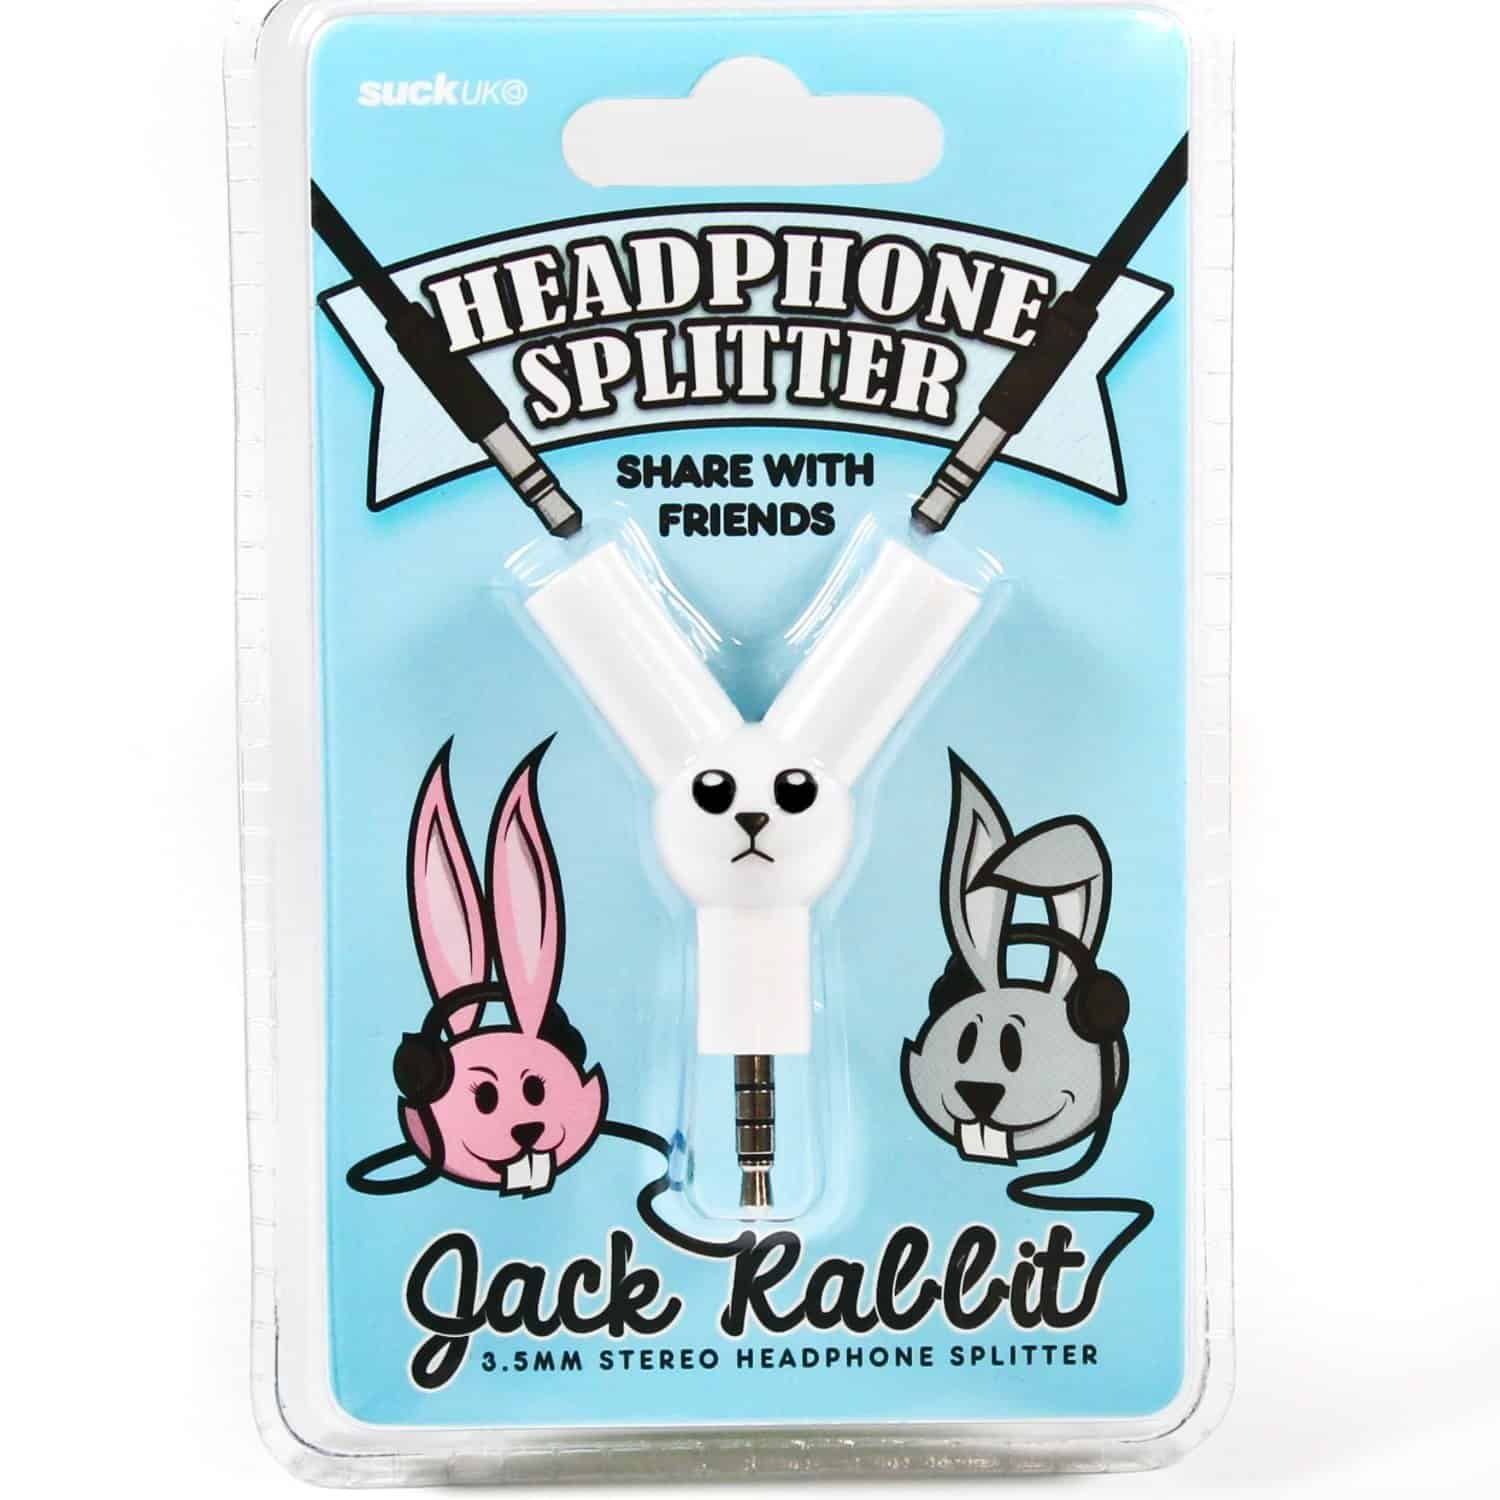 Jack Rabbit Headphone Splitter iPhone Accessory Cute Novelty